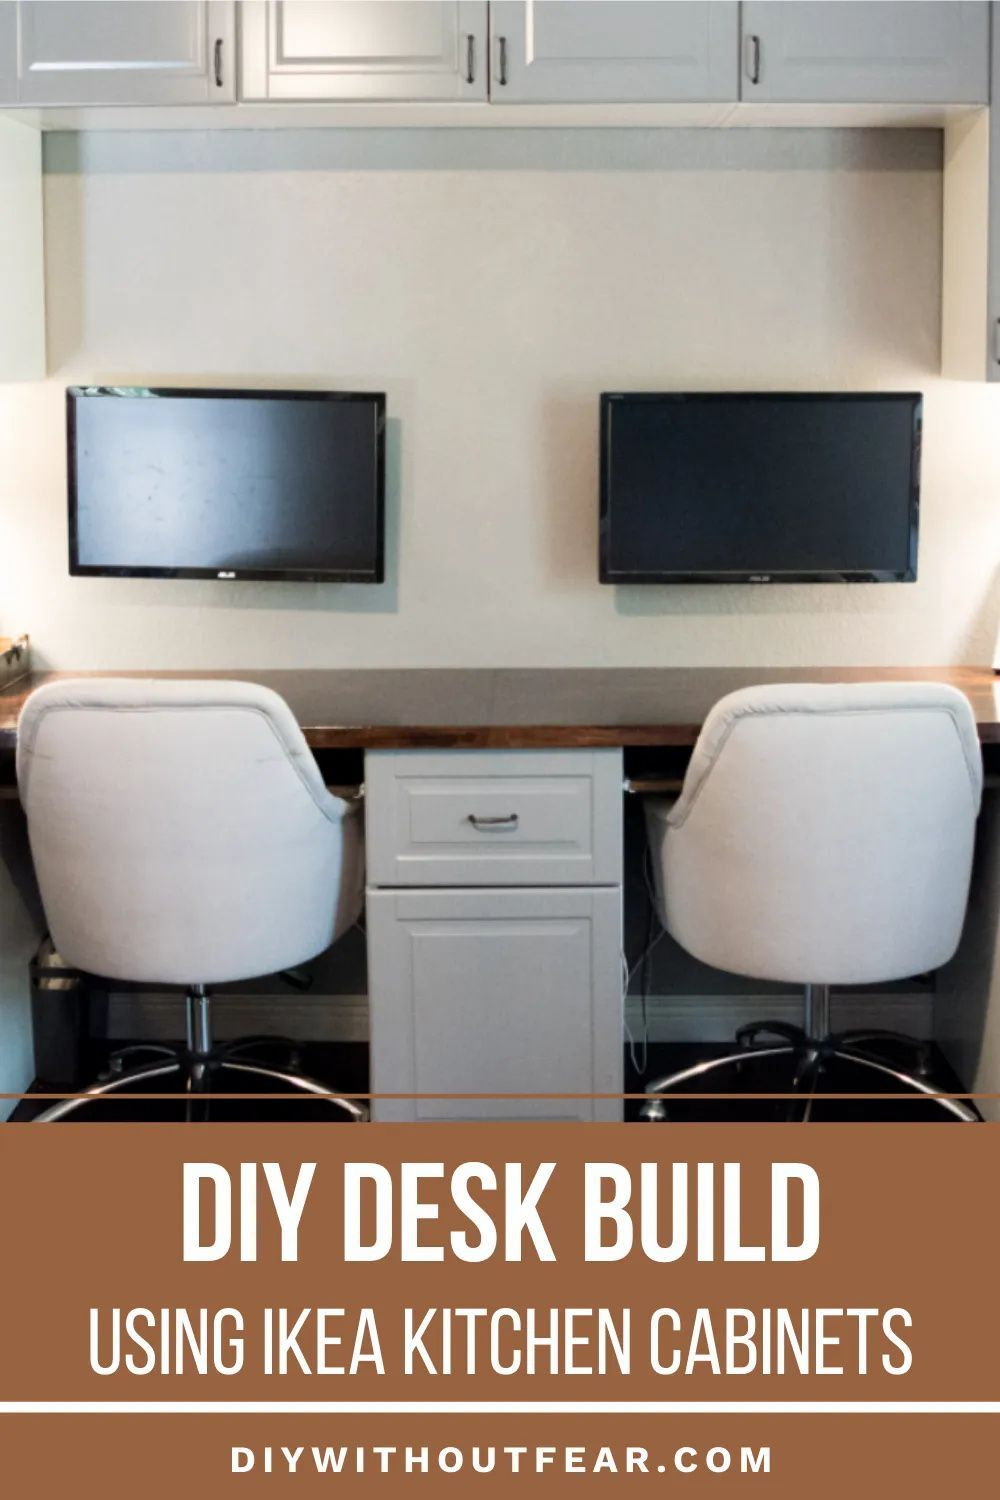 How To Make A Desk From Kitchen Cabinets Part Two Diy Without Fear In 2020 Ikea Kitchen Ikea Kitchen Cabinets Furniture Makeover Diy